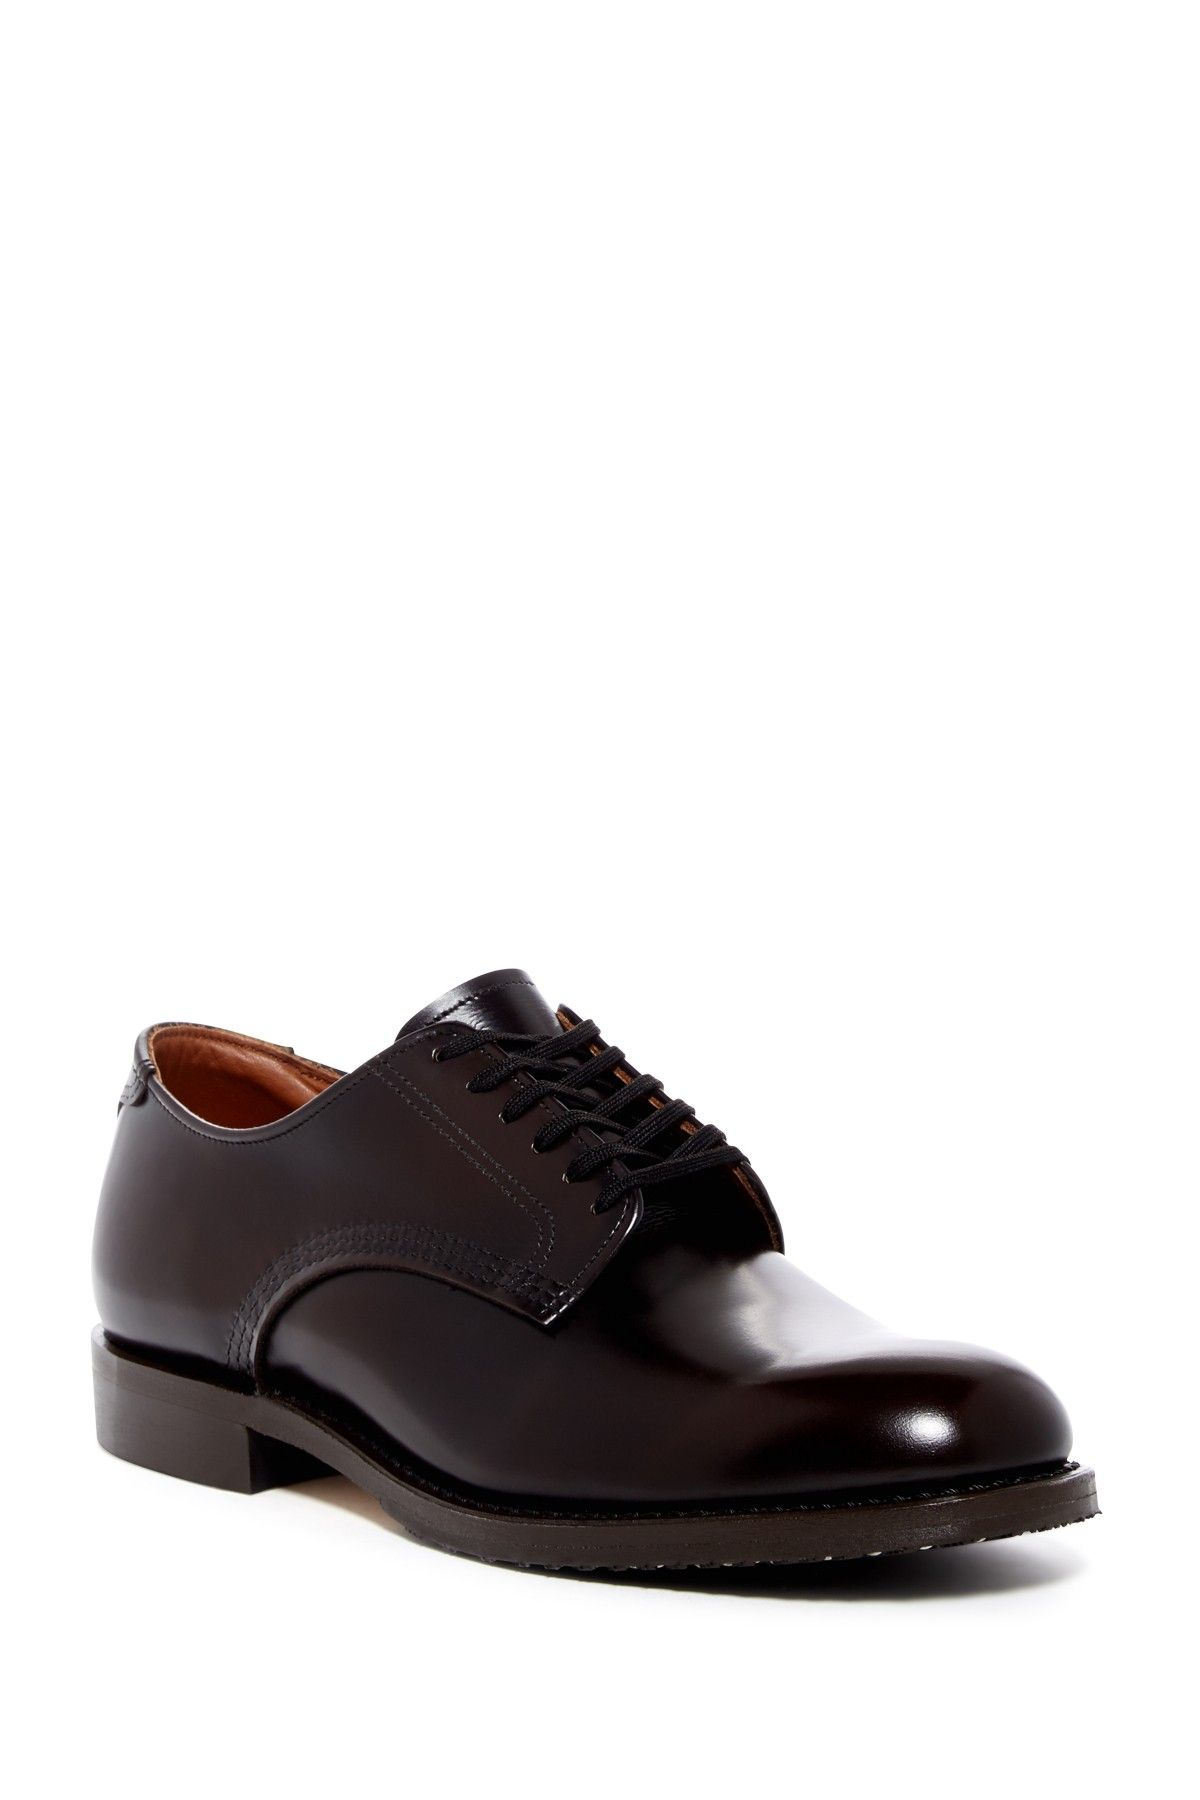 2261699299f RED WING   Leather Derby - Factory Second   Products   Mens fashion ...